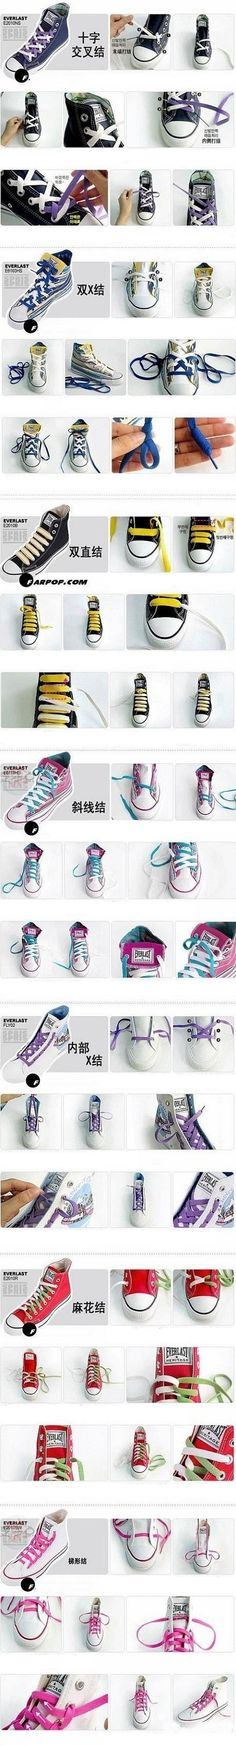 7 Cool Ways To Tie Your Shoe Laces : DIY and Craft Tutorials